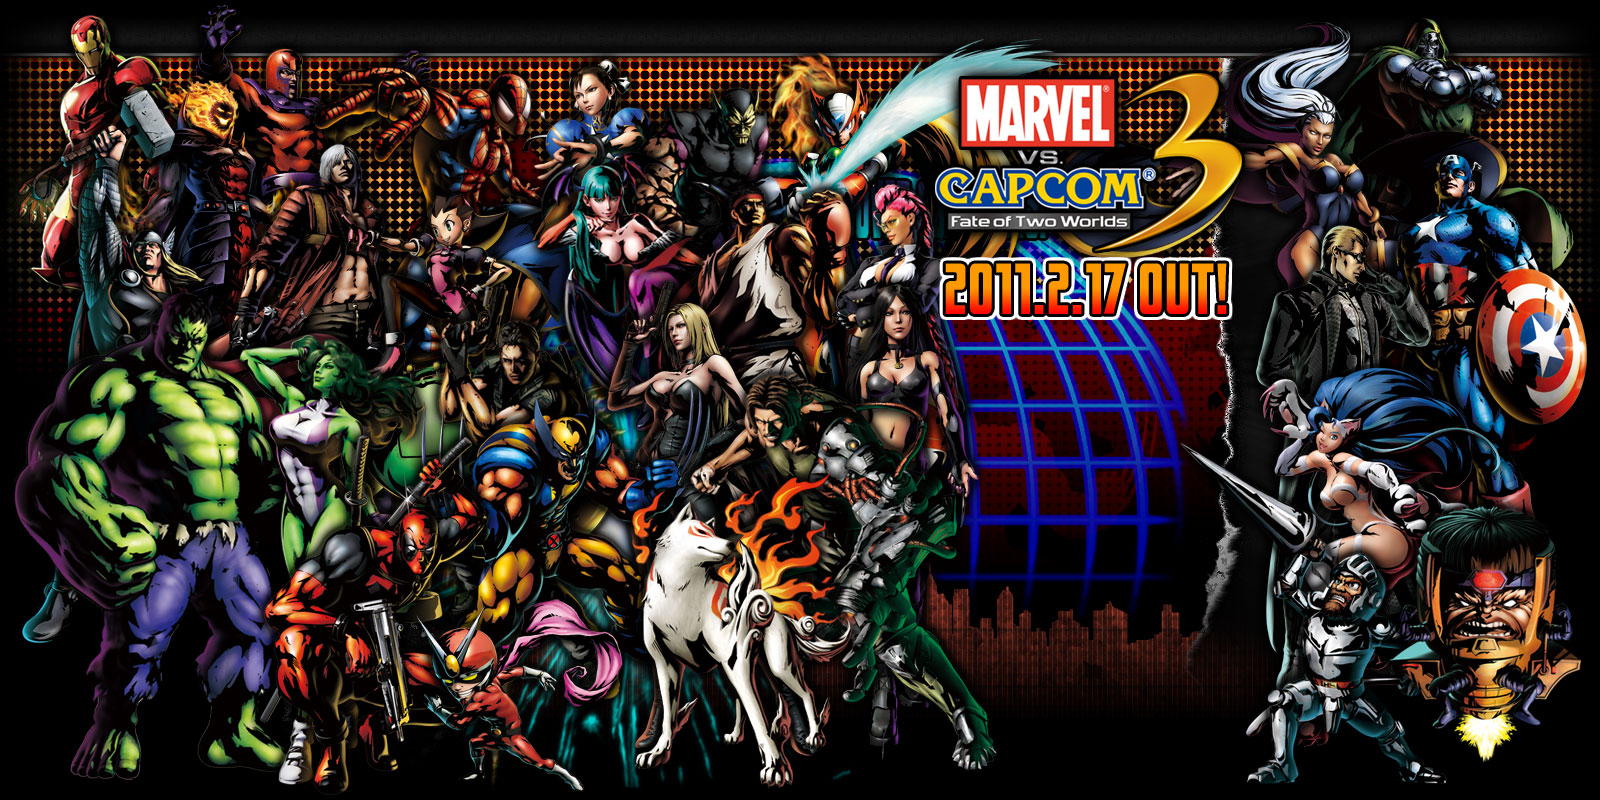 Full marvel vs capcom 3 direct download